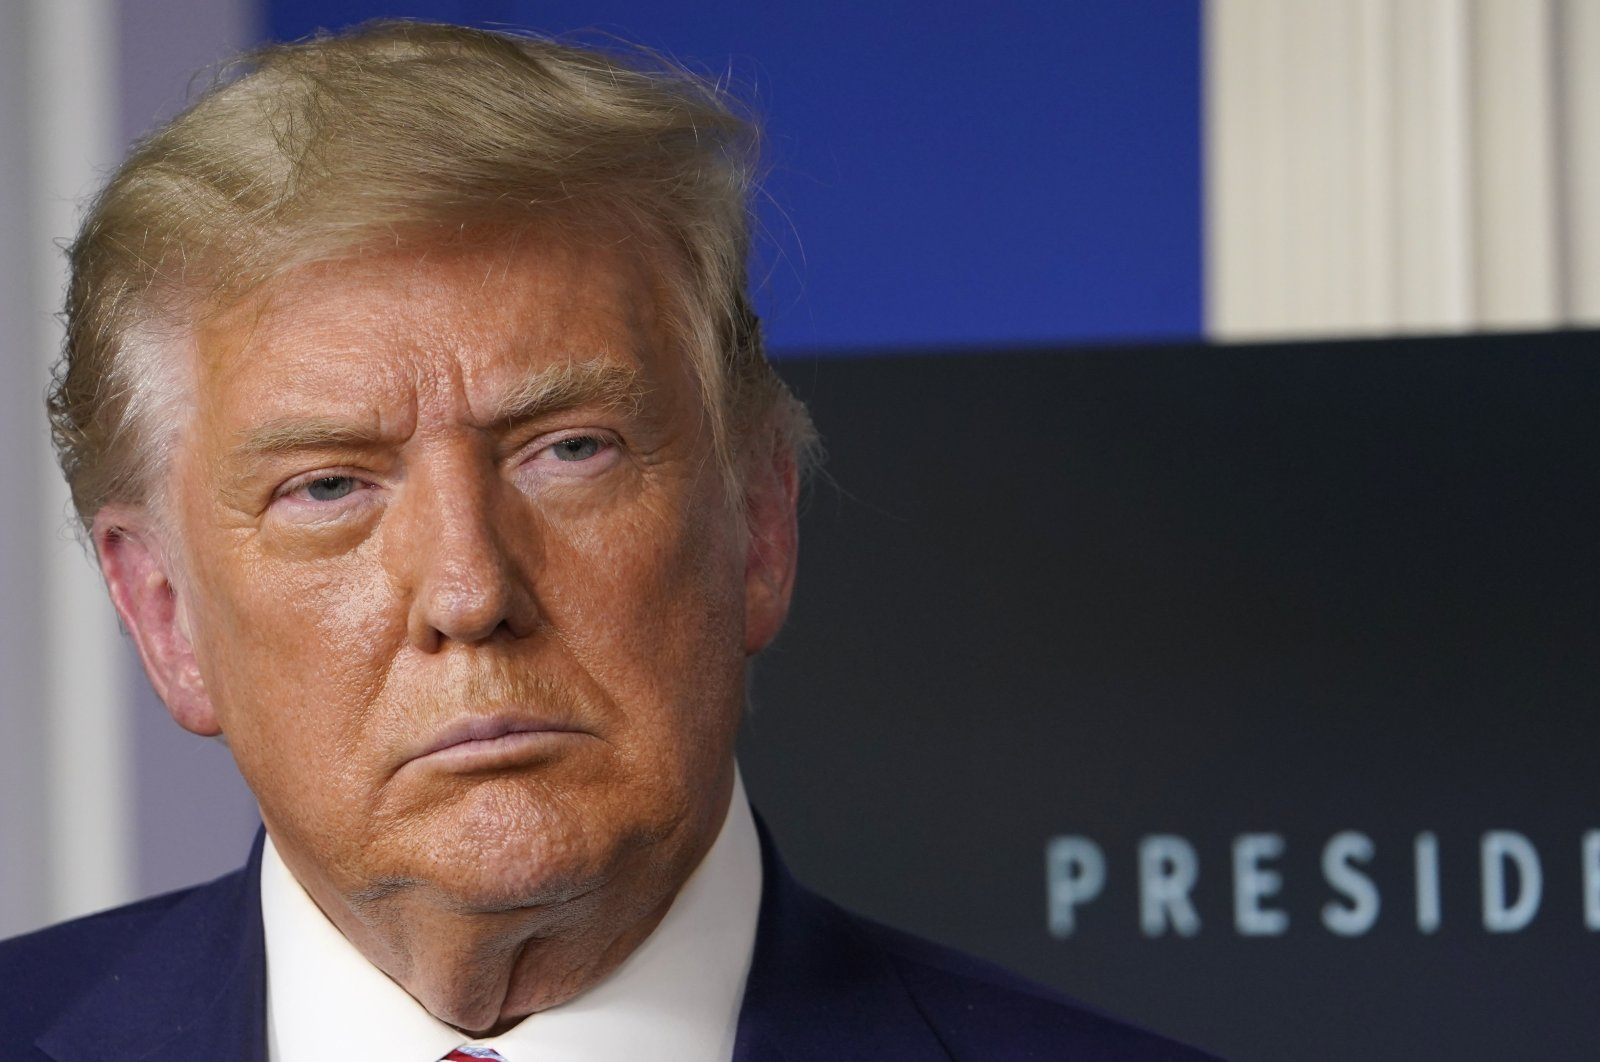 In this Friday, Nov. 20, 2020 file photo, President Donald Trump listens during an event in the briefing room of the White House in Washington. (AP Photo)